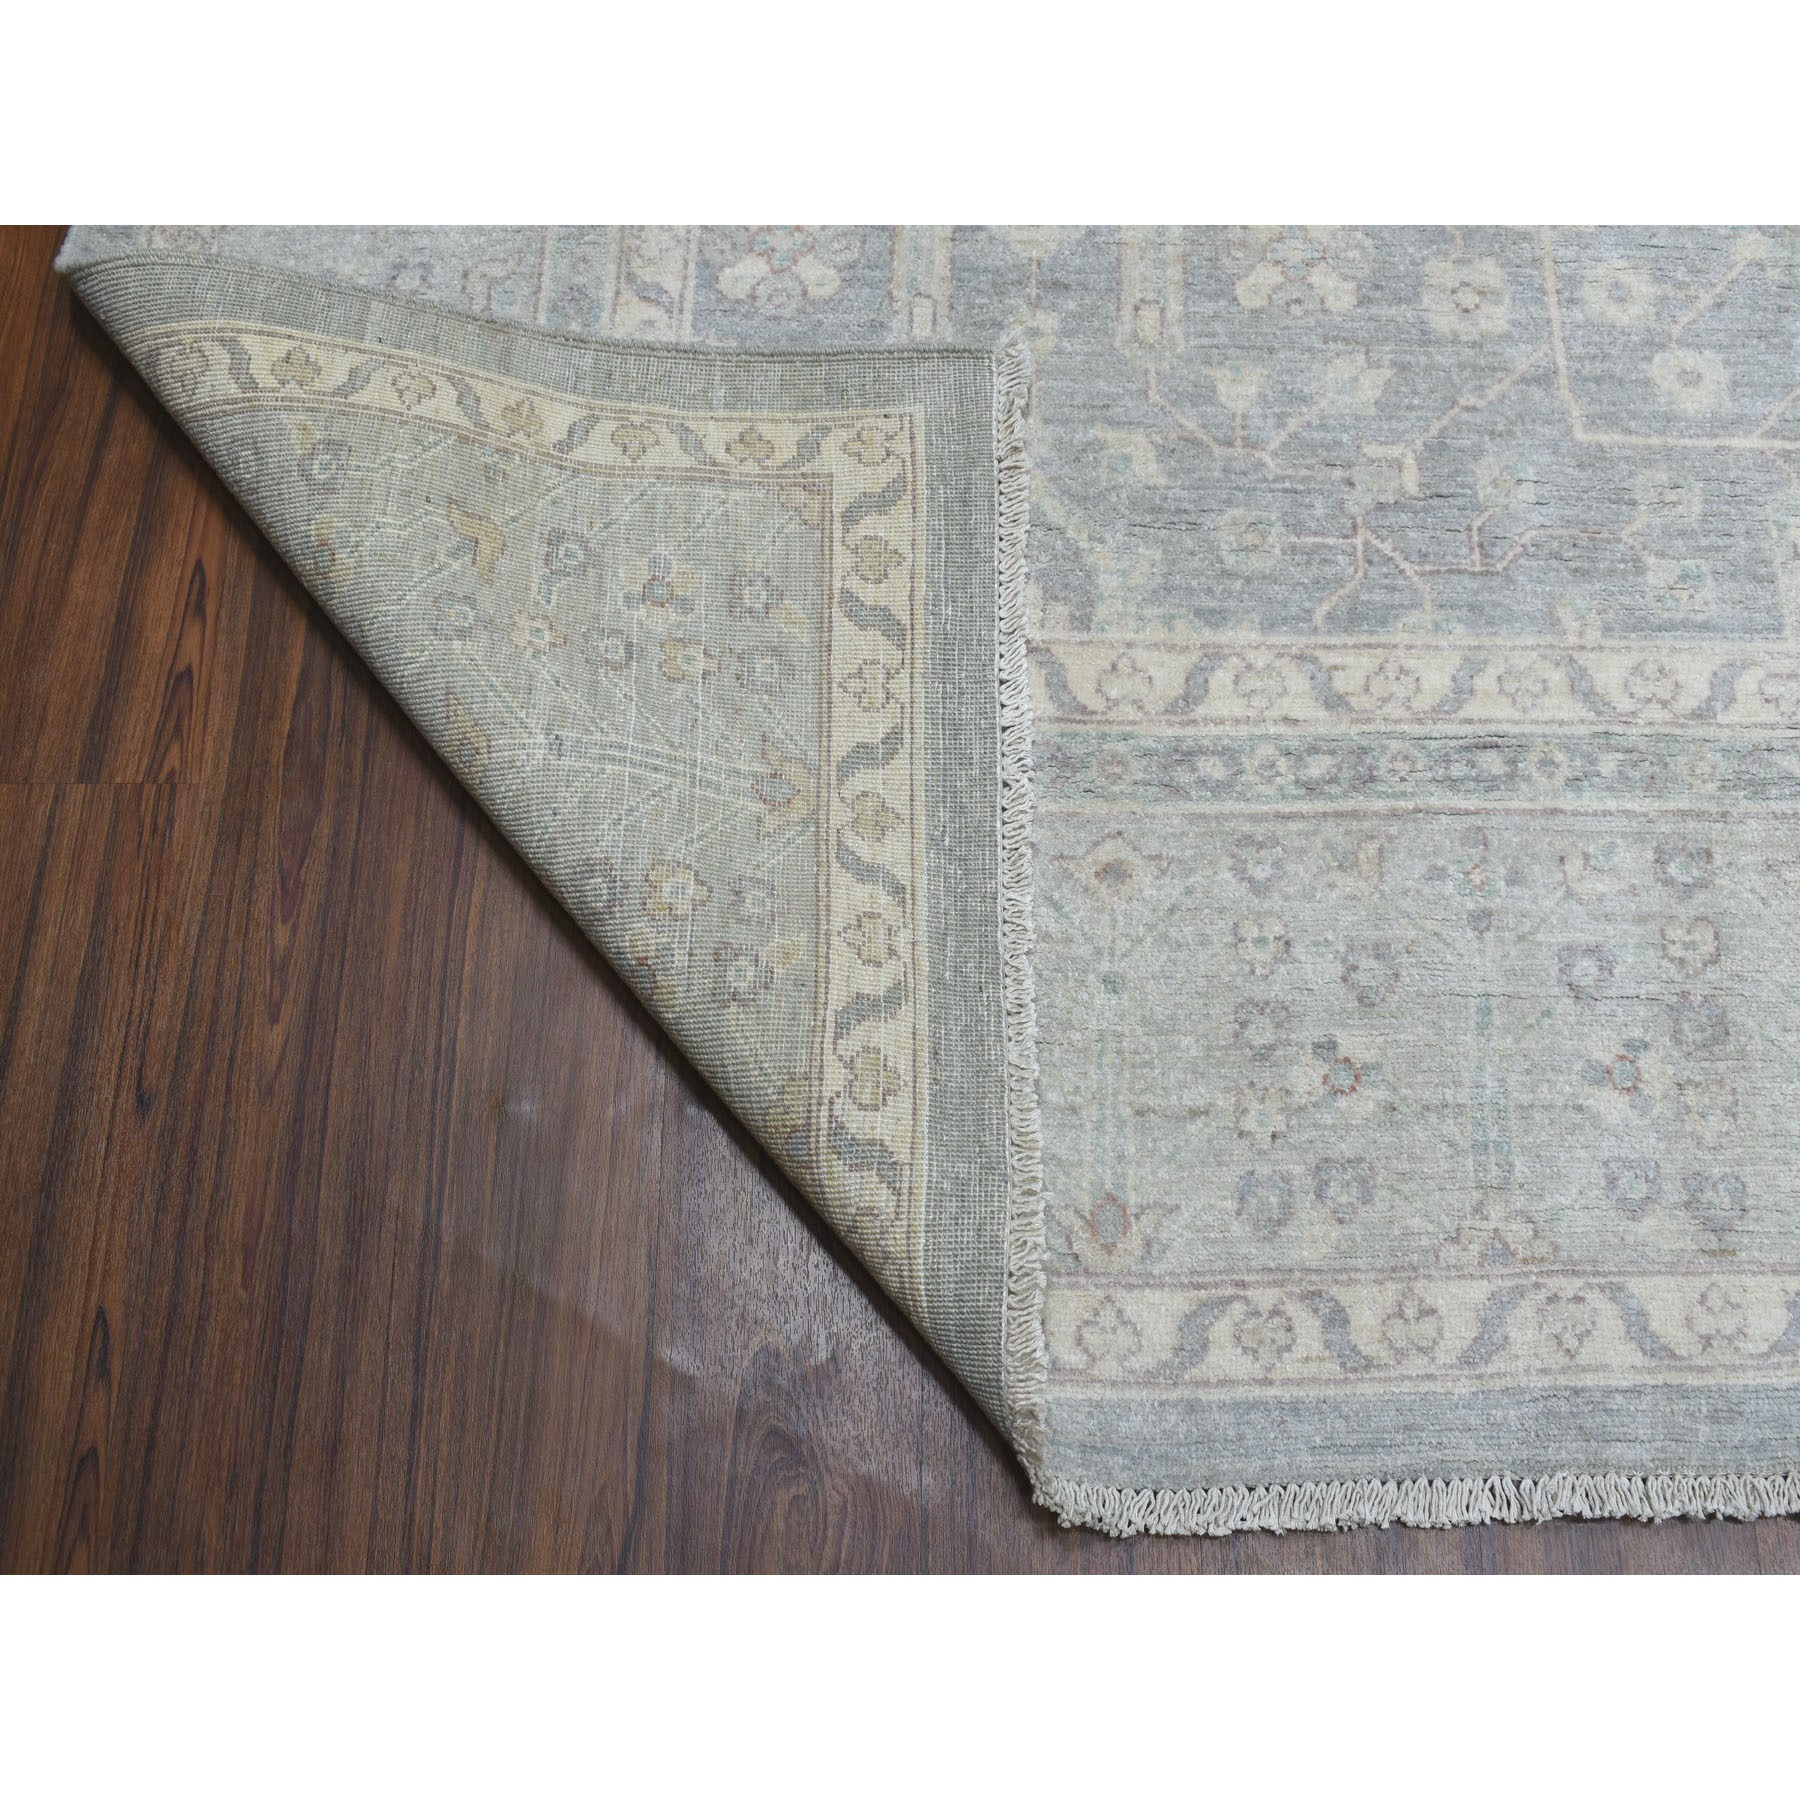 9-x12- White Wash Peshawar Pure Wool Hand Knotted Oriental Rug